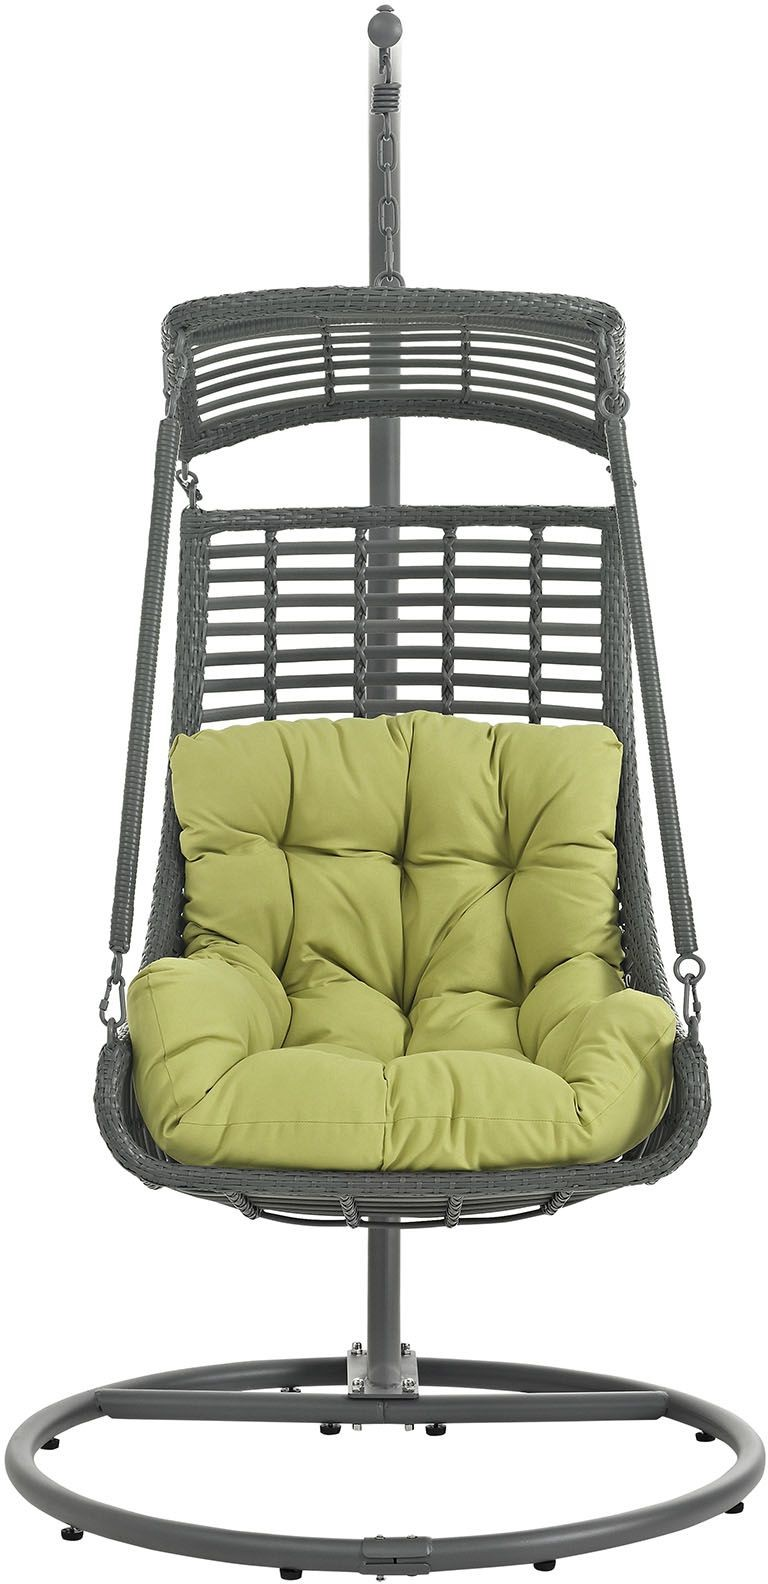 jungle peridot outdoor patio swing chair with stand eei 2274 per set renegade furniture. Black Bedroom Furniture Sets. Home Design Ideas